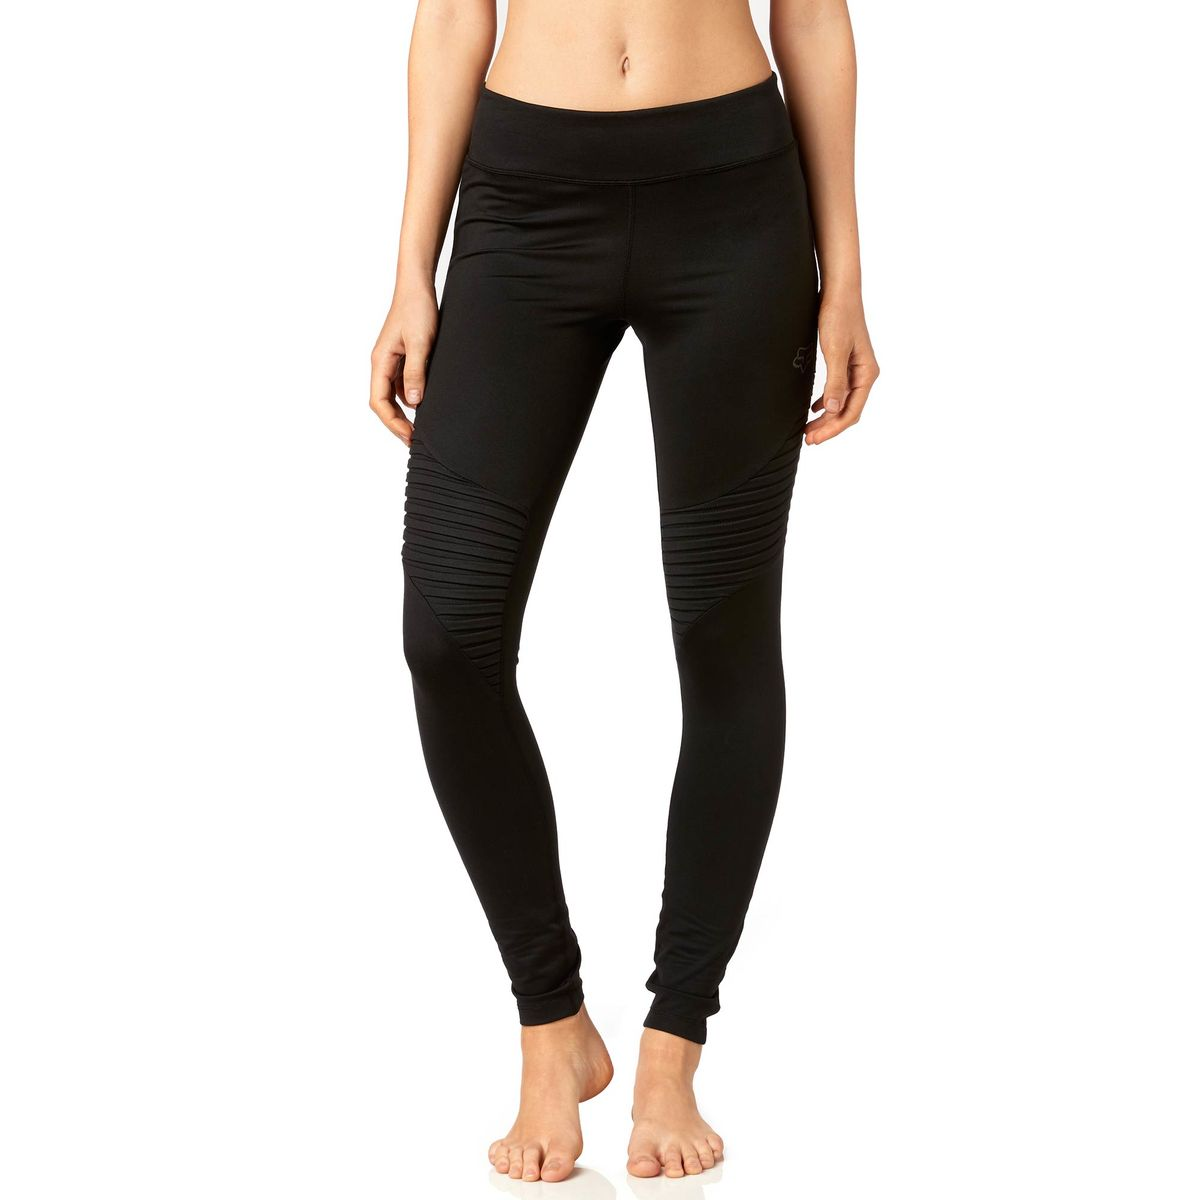 MOTO LEGGINGS for women